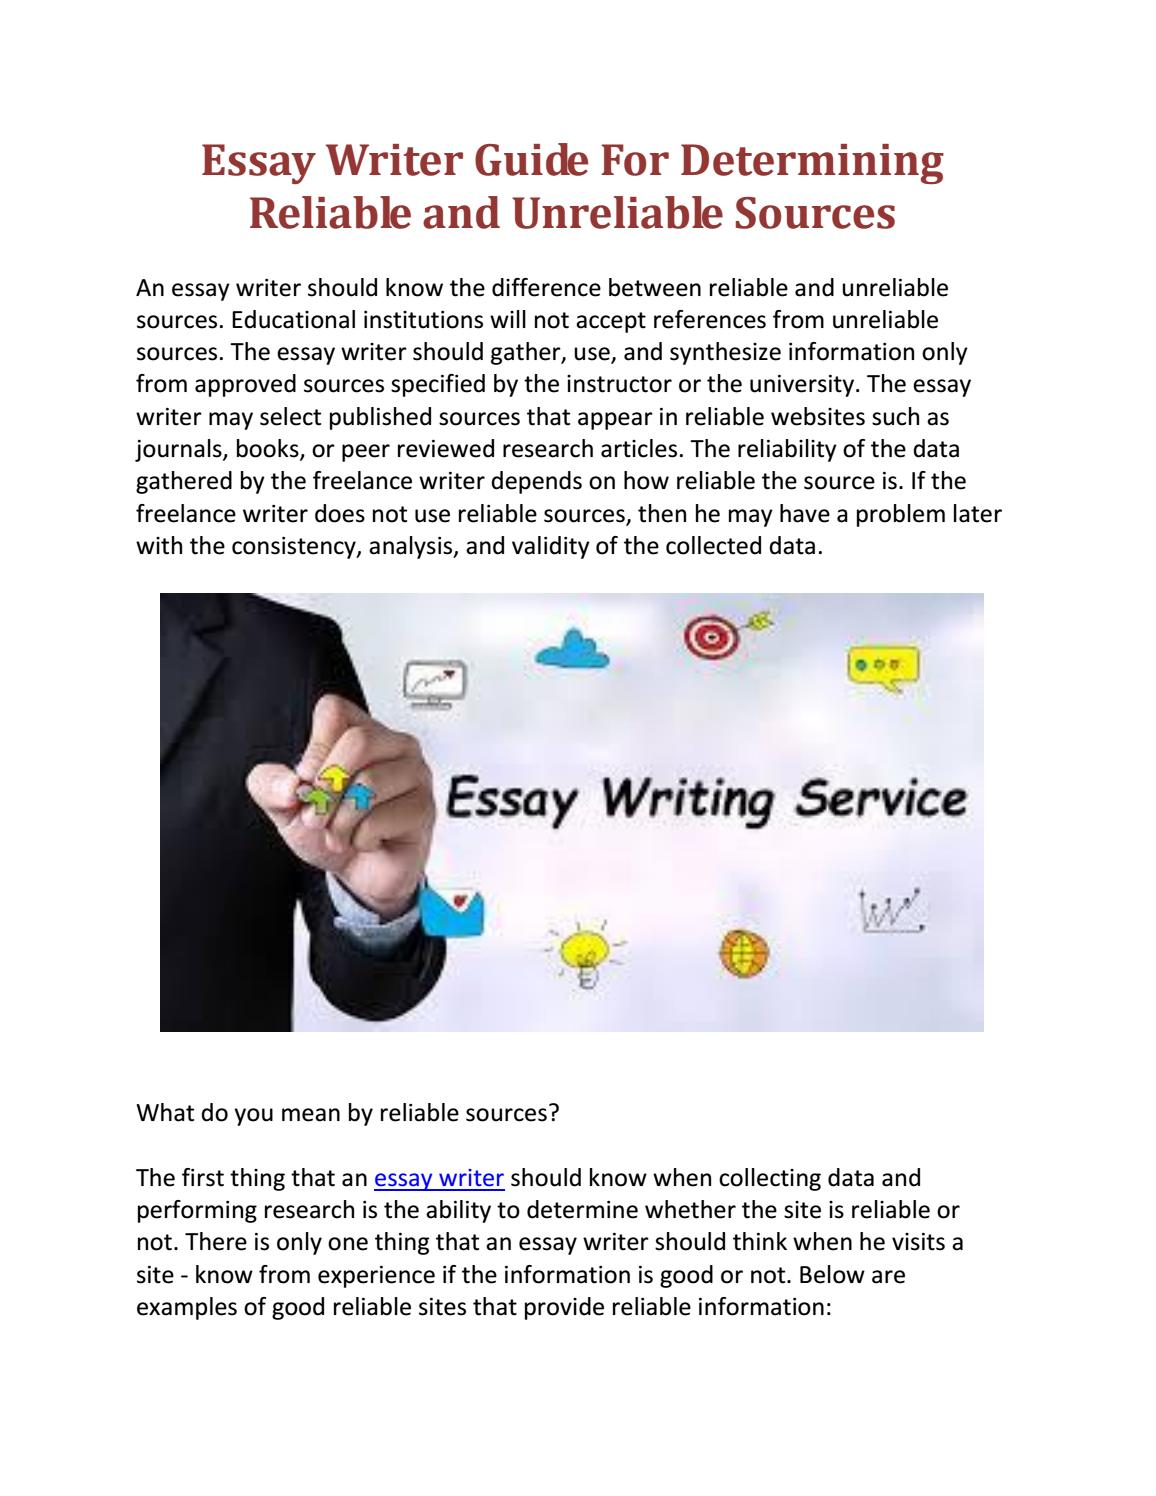 5 Best Essay Writing Services: Review of the Top 5 Most Trustworthy Essay Sites Today - SF Weekly